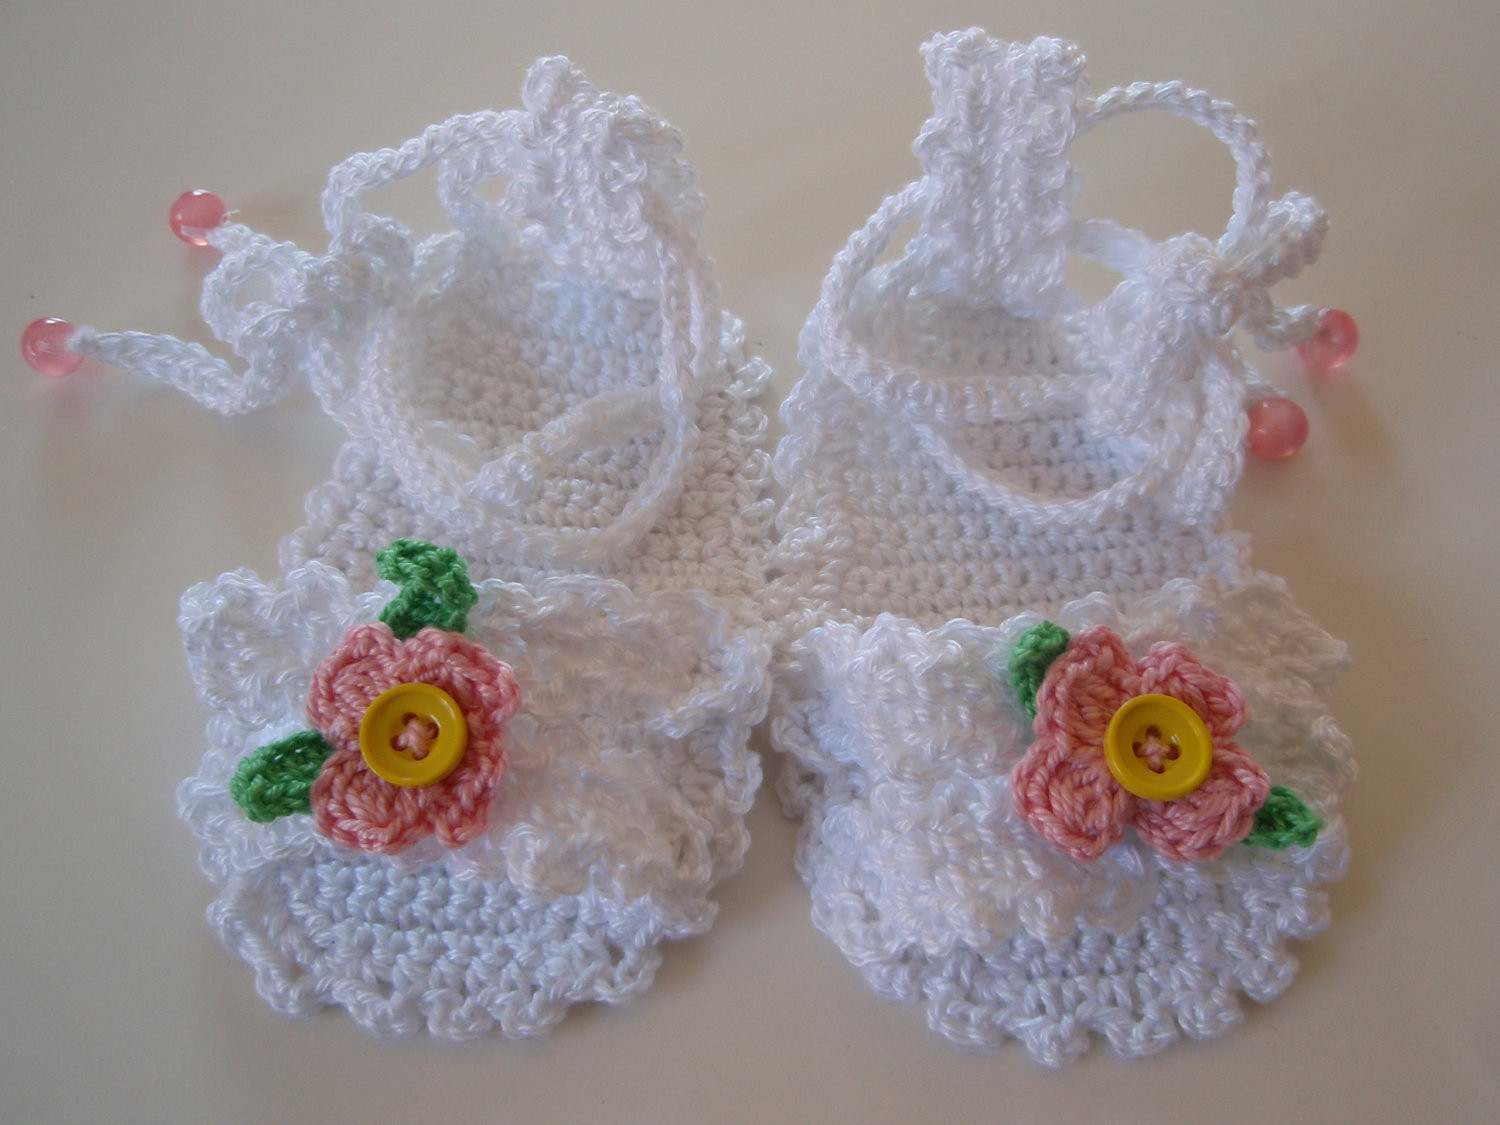 Crochet Booties for Baby Girl Awesome Baby Girl Booties Crochet Patterns Free Of Attractive 44 Models Crochet Booties for Baby Girl